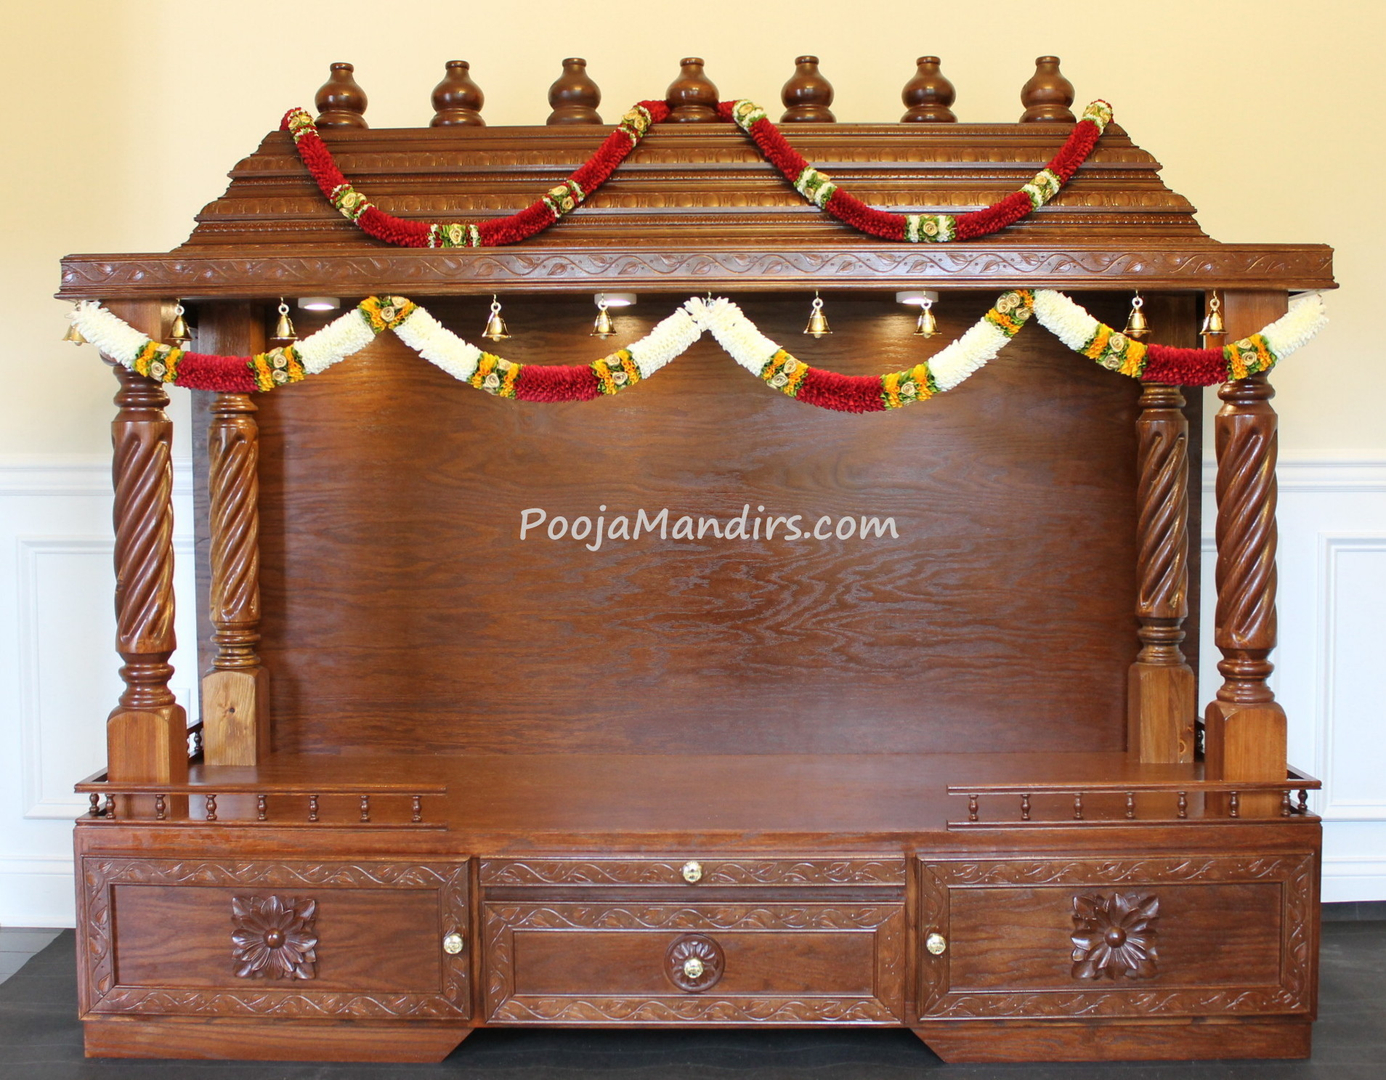 Stunning wooden pooja mandir designs for home pictures for Home mandir designs marble